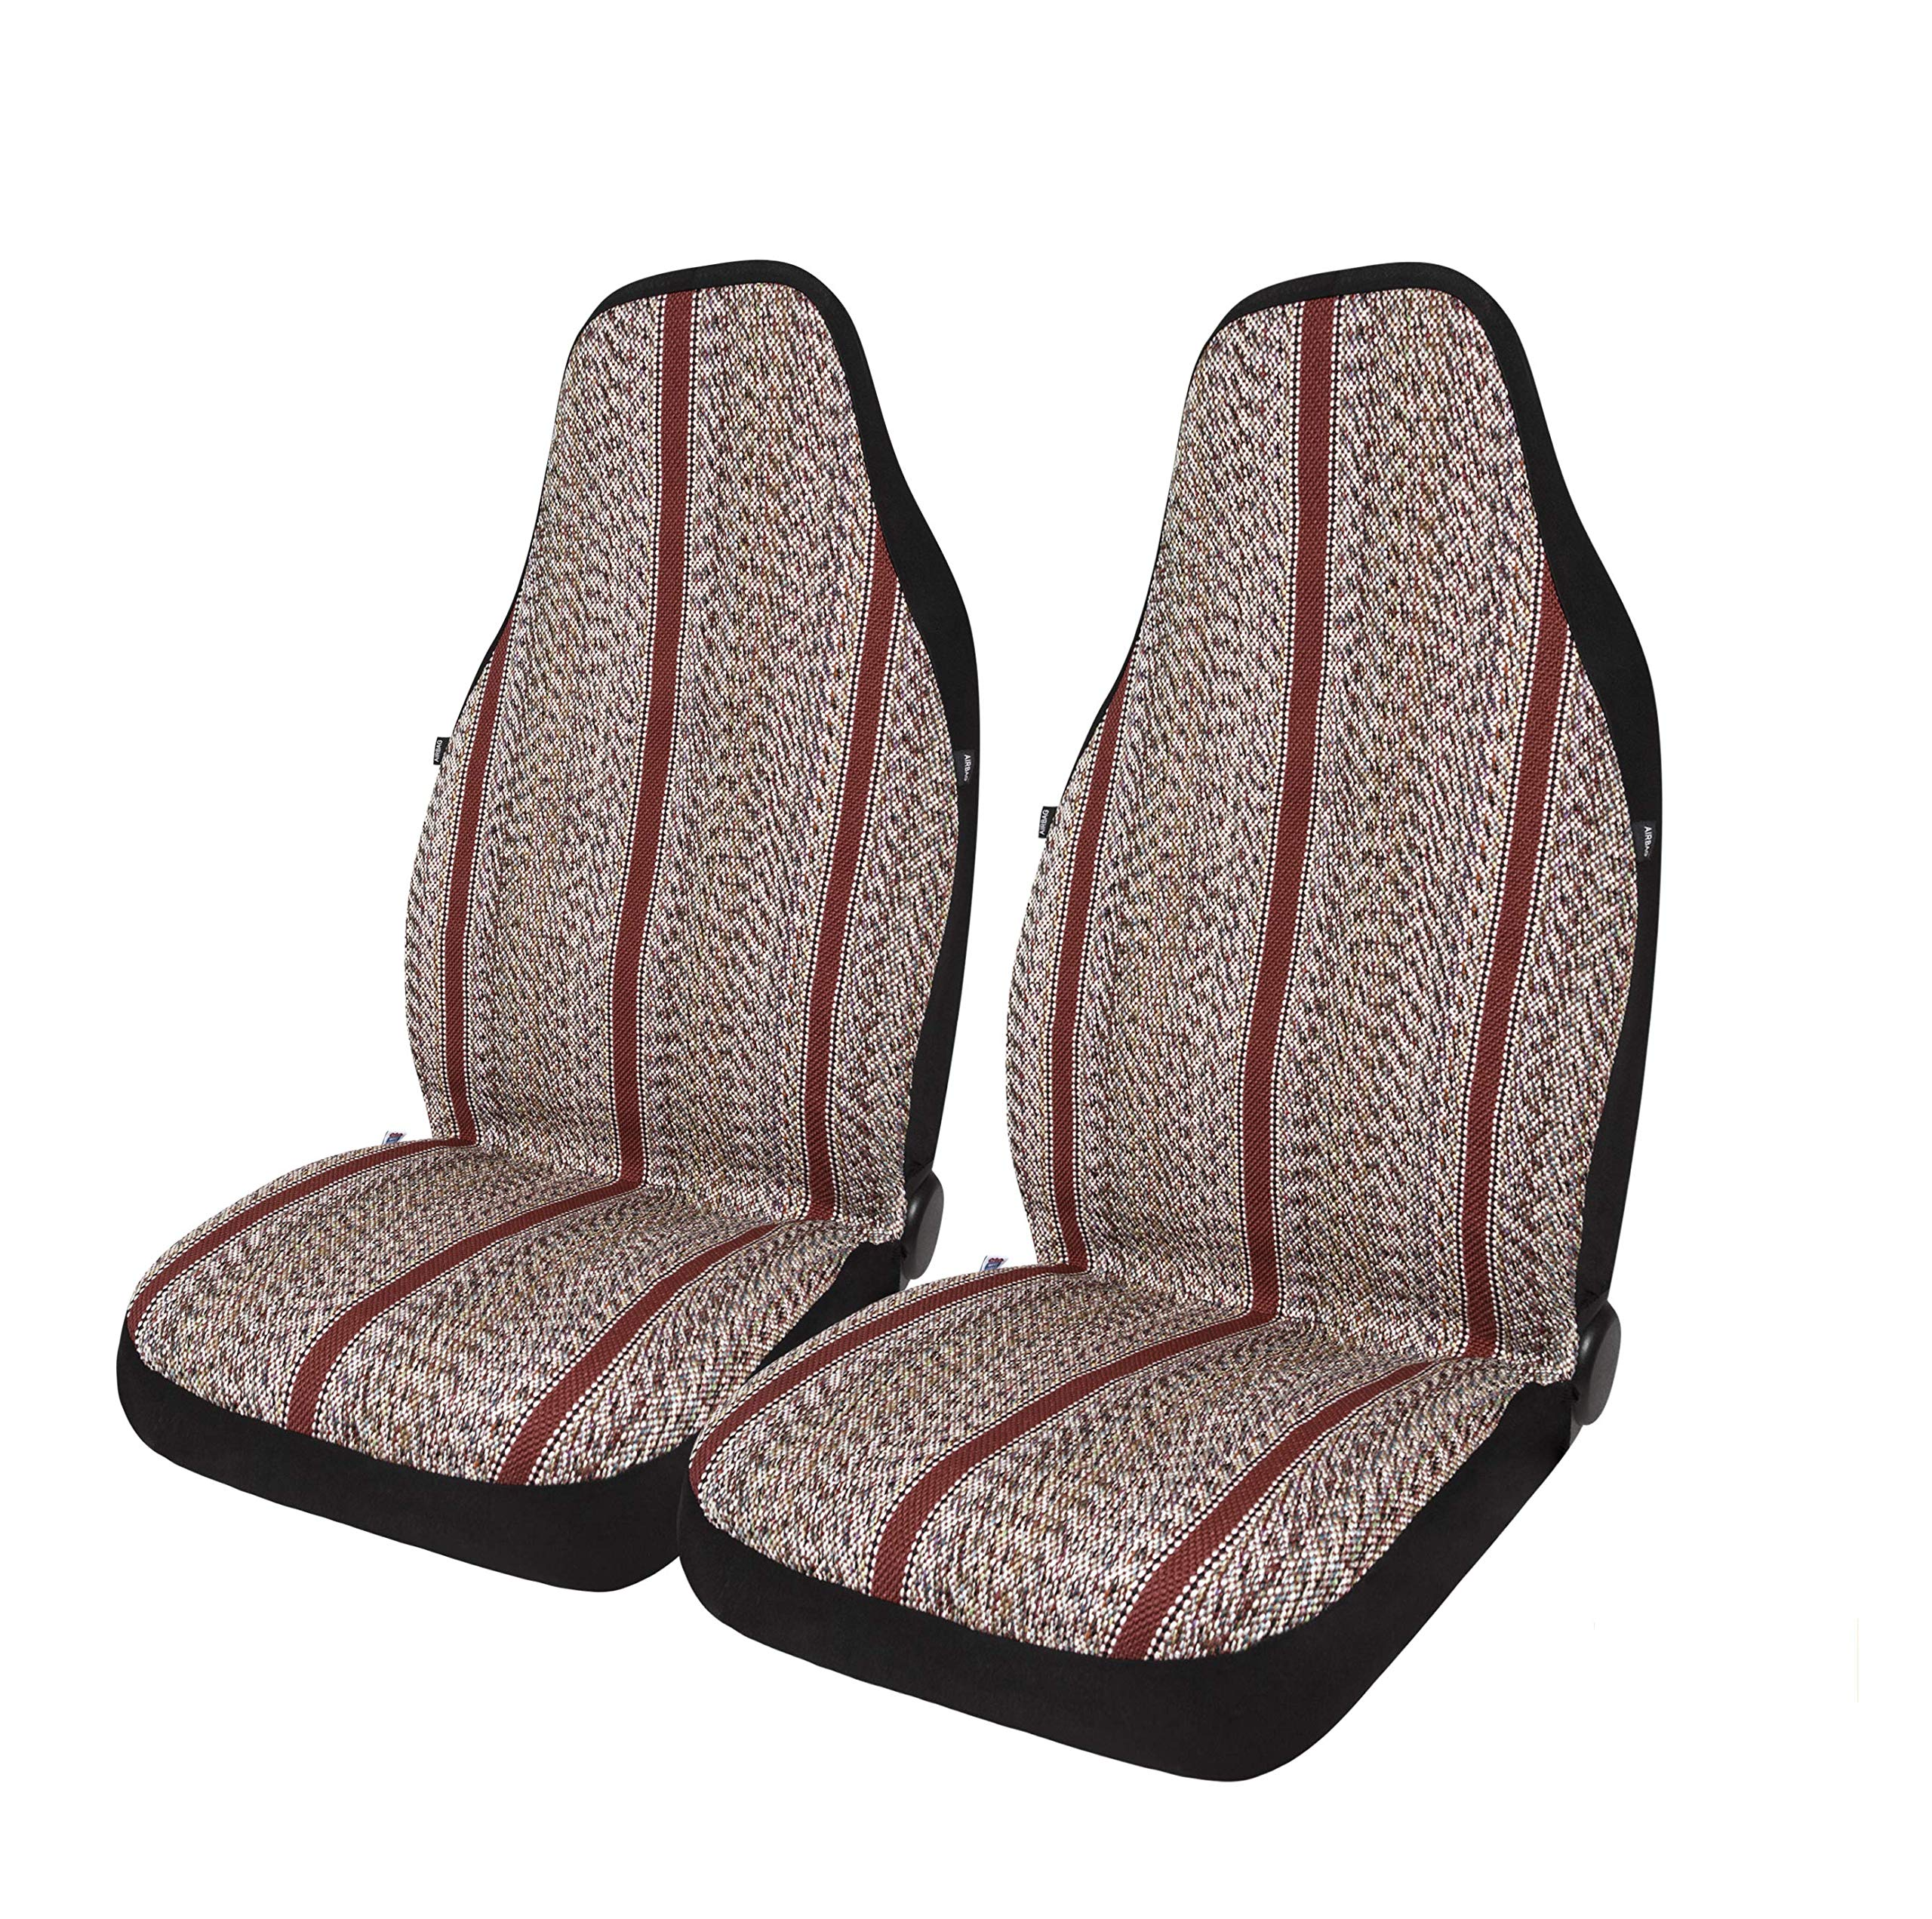 West Coast Auto Baja Blanket Bucket Seat Cover for Car, Truck, Van, SUV - Airbag Compatible (2PCS) (Red) by West Coast Auto